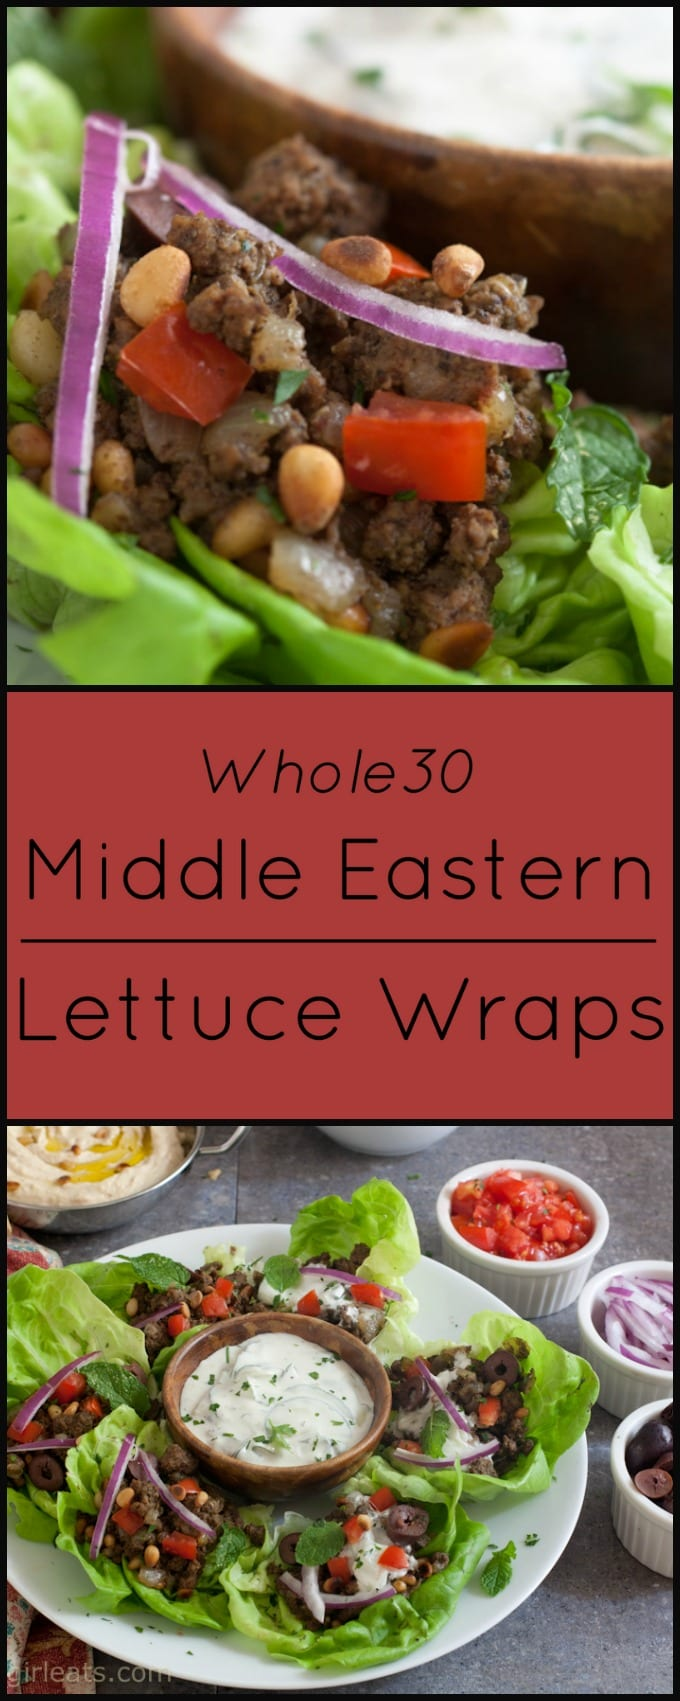 These Middle Eastern Lettuce Wraps are Whole30 compliant, low carb and gluten free.